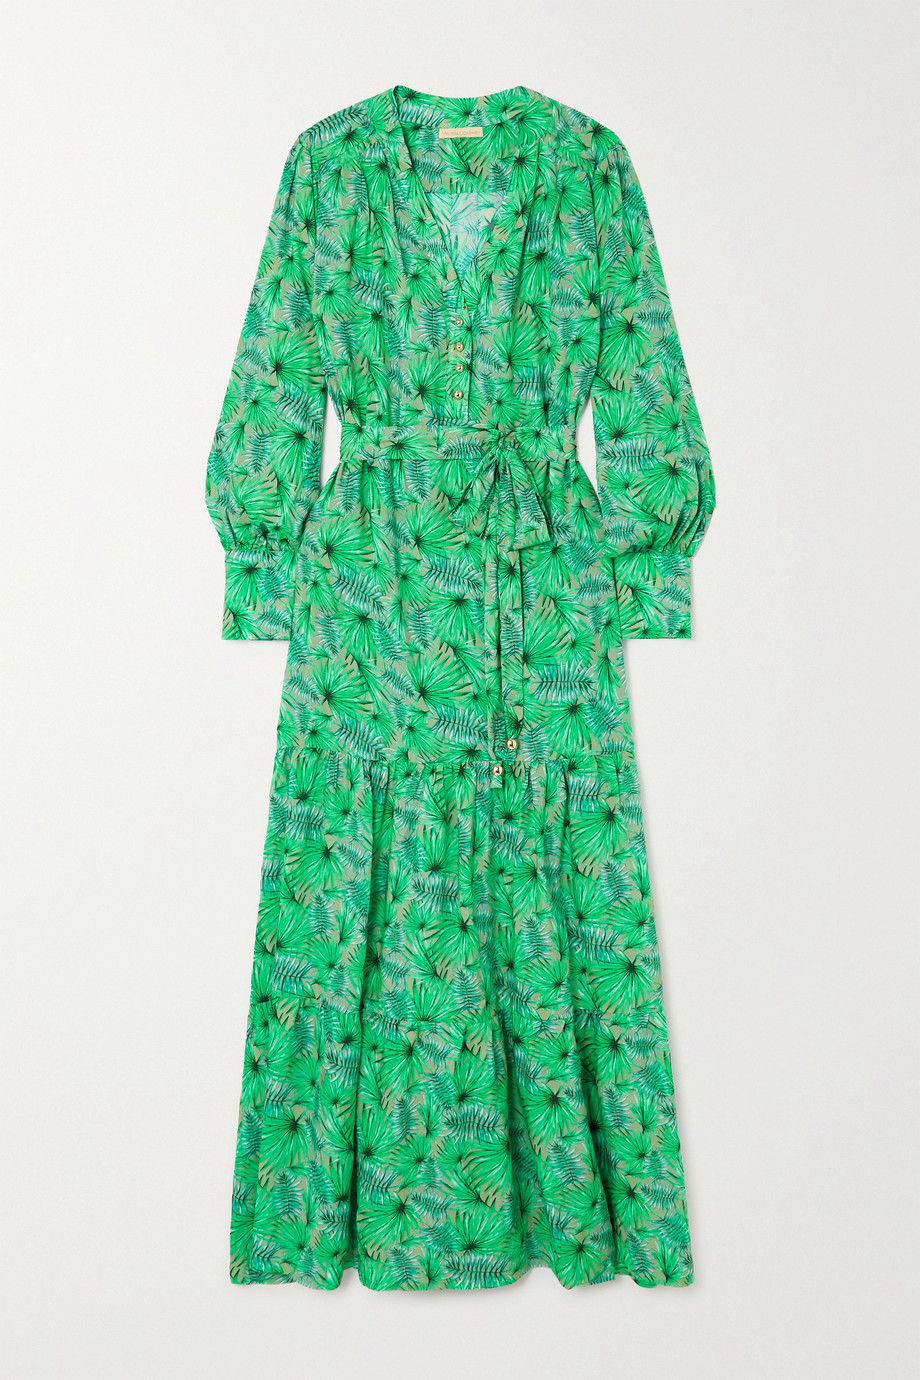 Melissa Odabash Sonja belted tiered printed woven maxi dress